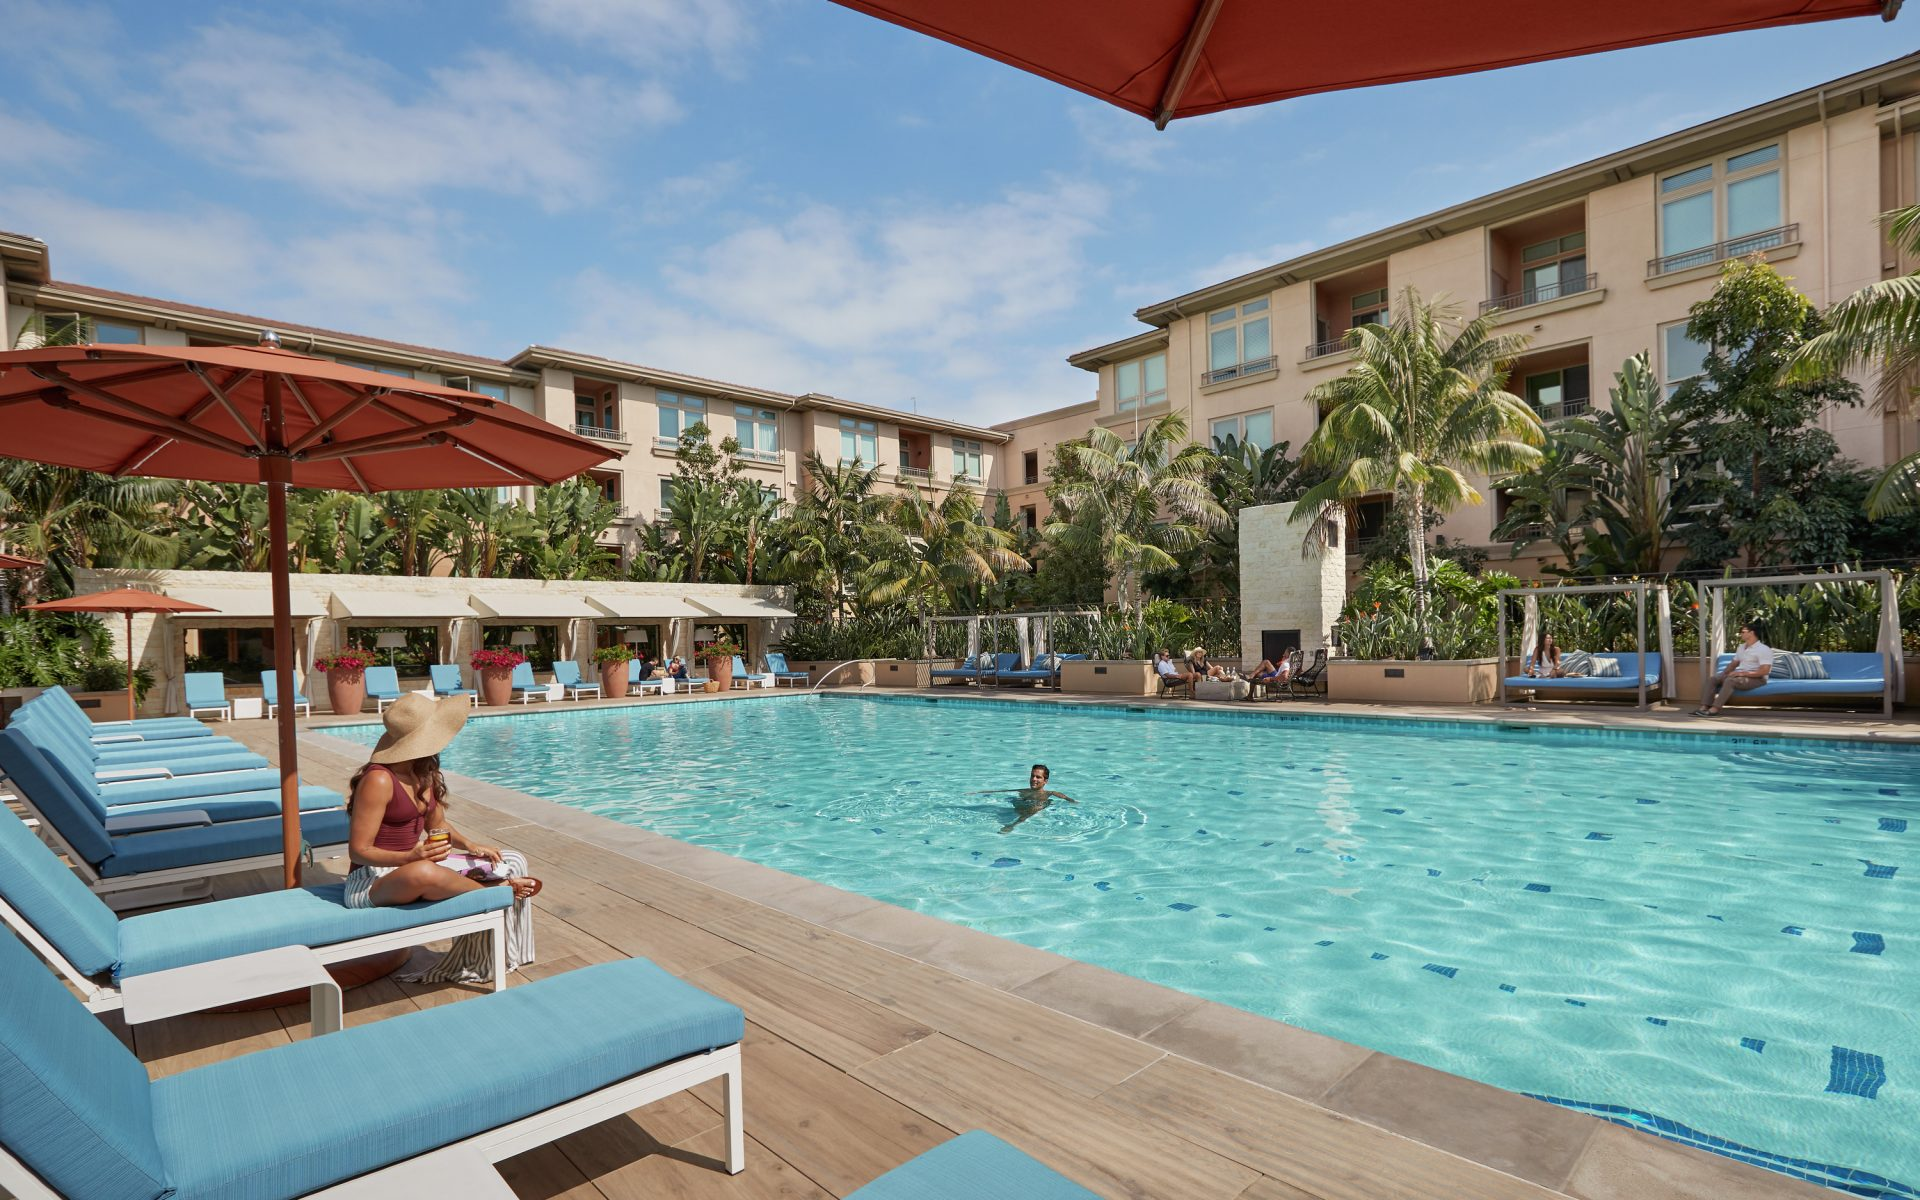 Exterior view of people spending time by pool at Villas at Playa Vista Apartment Homes in Playa Vista, CA.